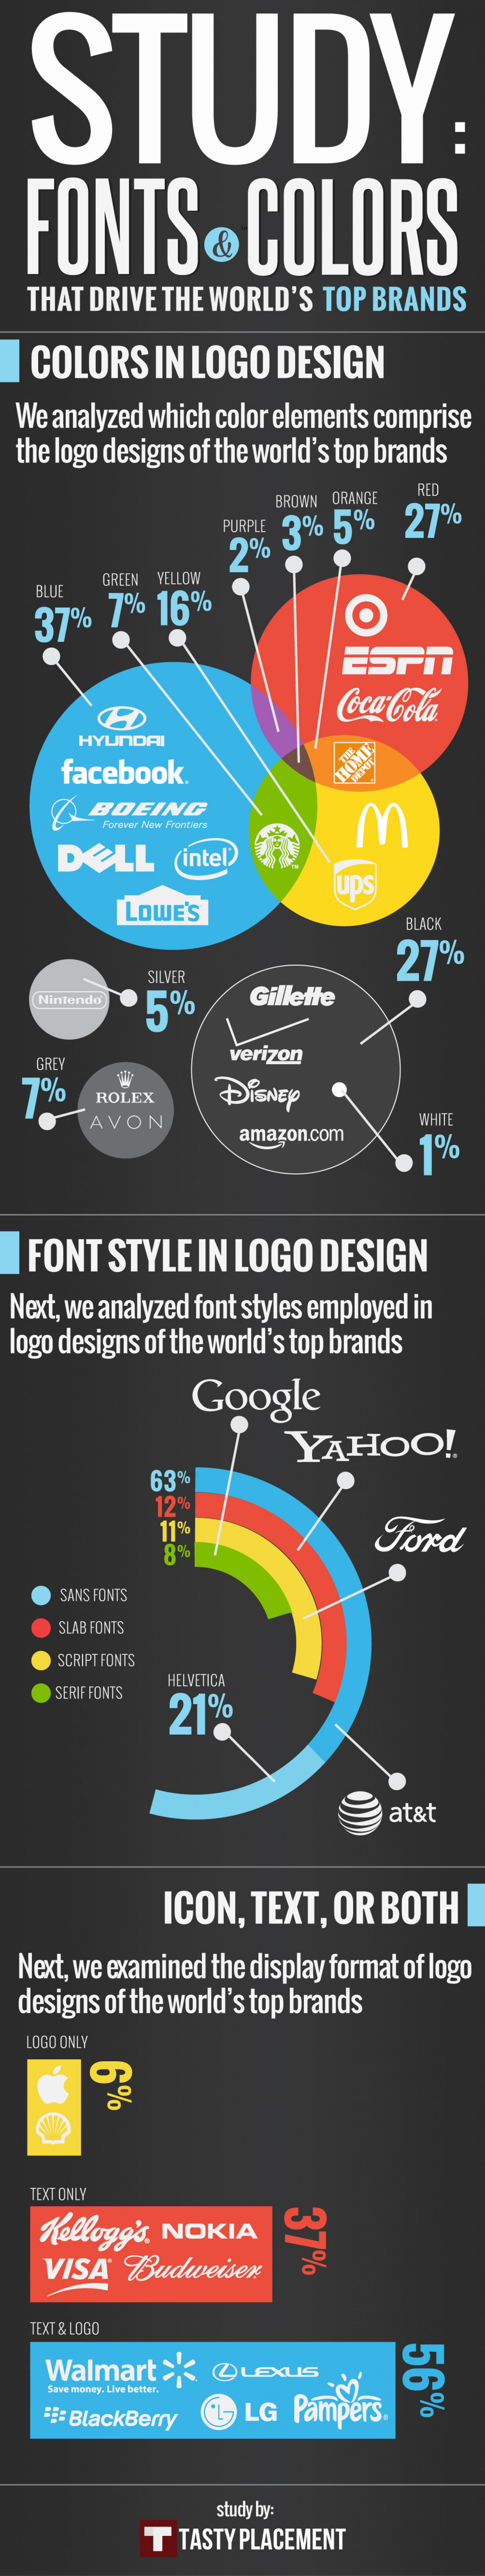 Fonts & Colors That Drive the World's Top Brands Infographic